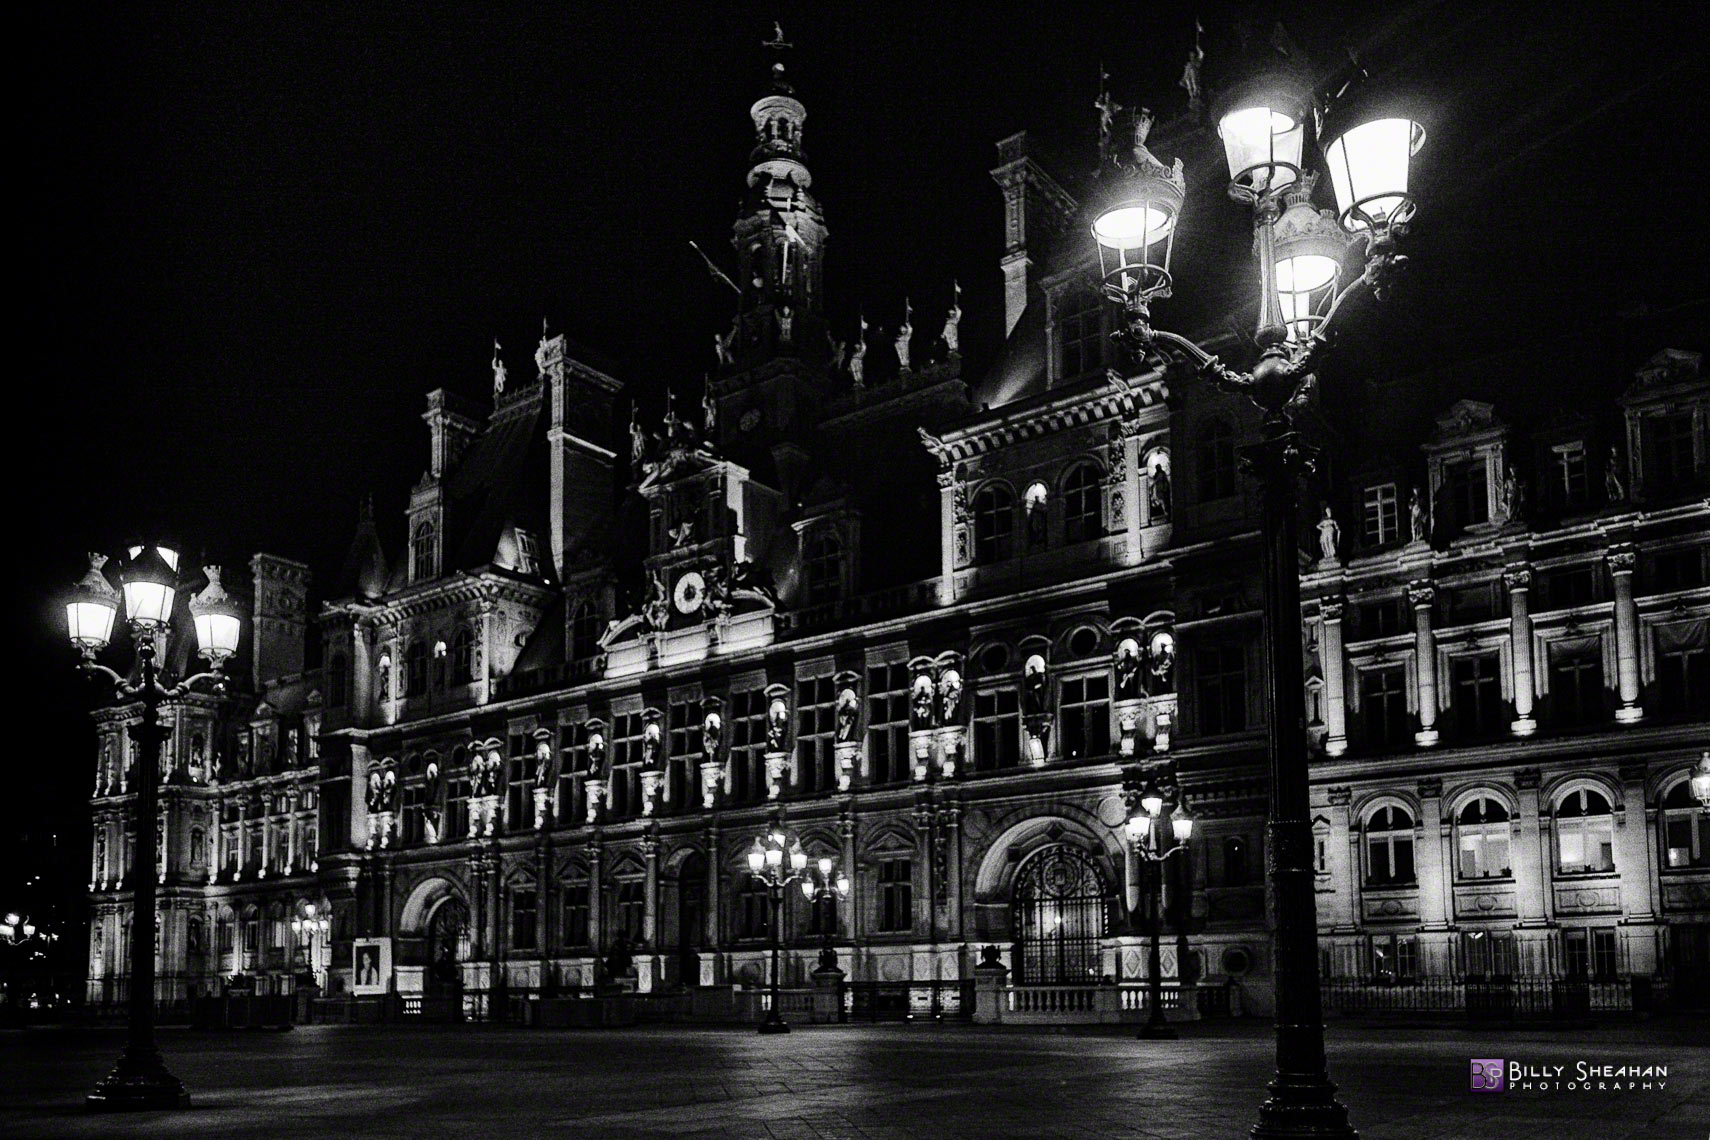 Place_de_l_Hotel_de_Ville_a_Nuit__Paris__France_Paris2008_23Apr2008_0231_BW_D